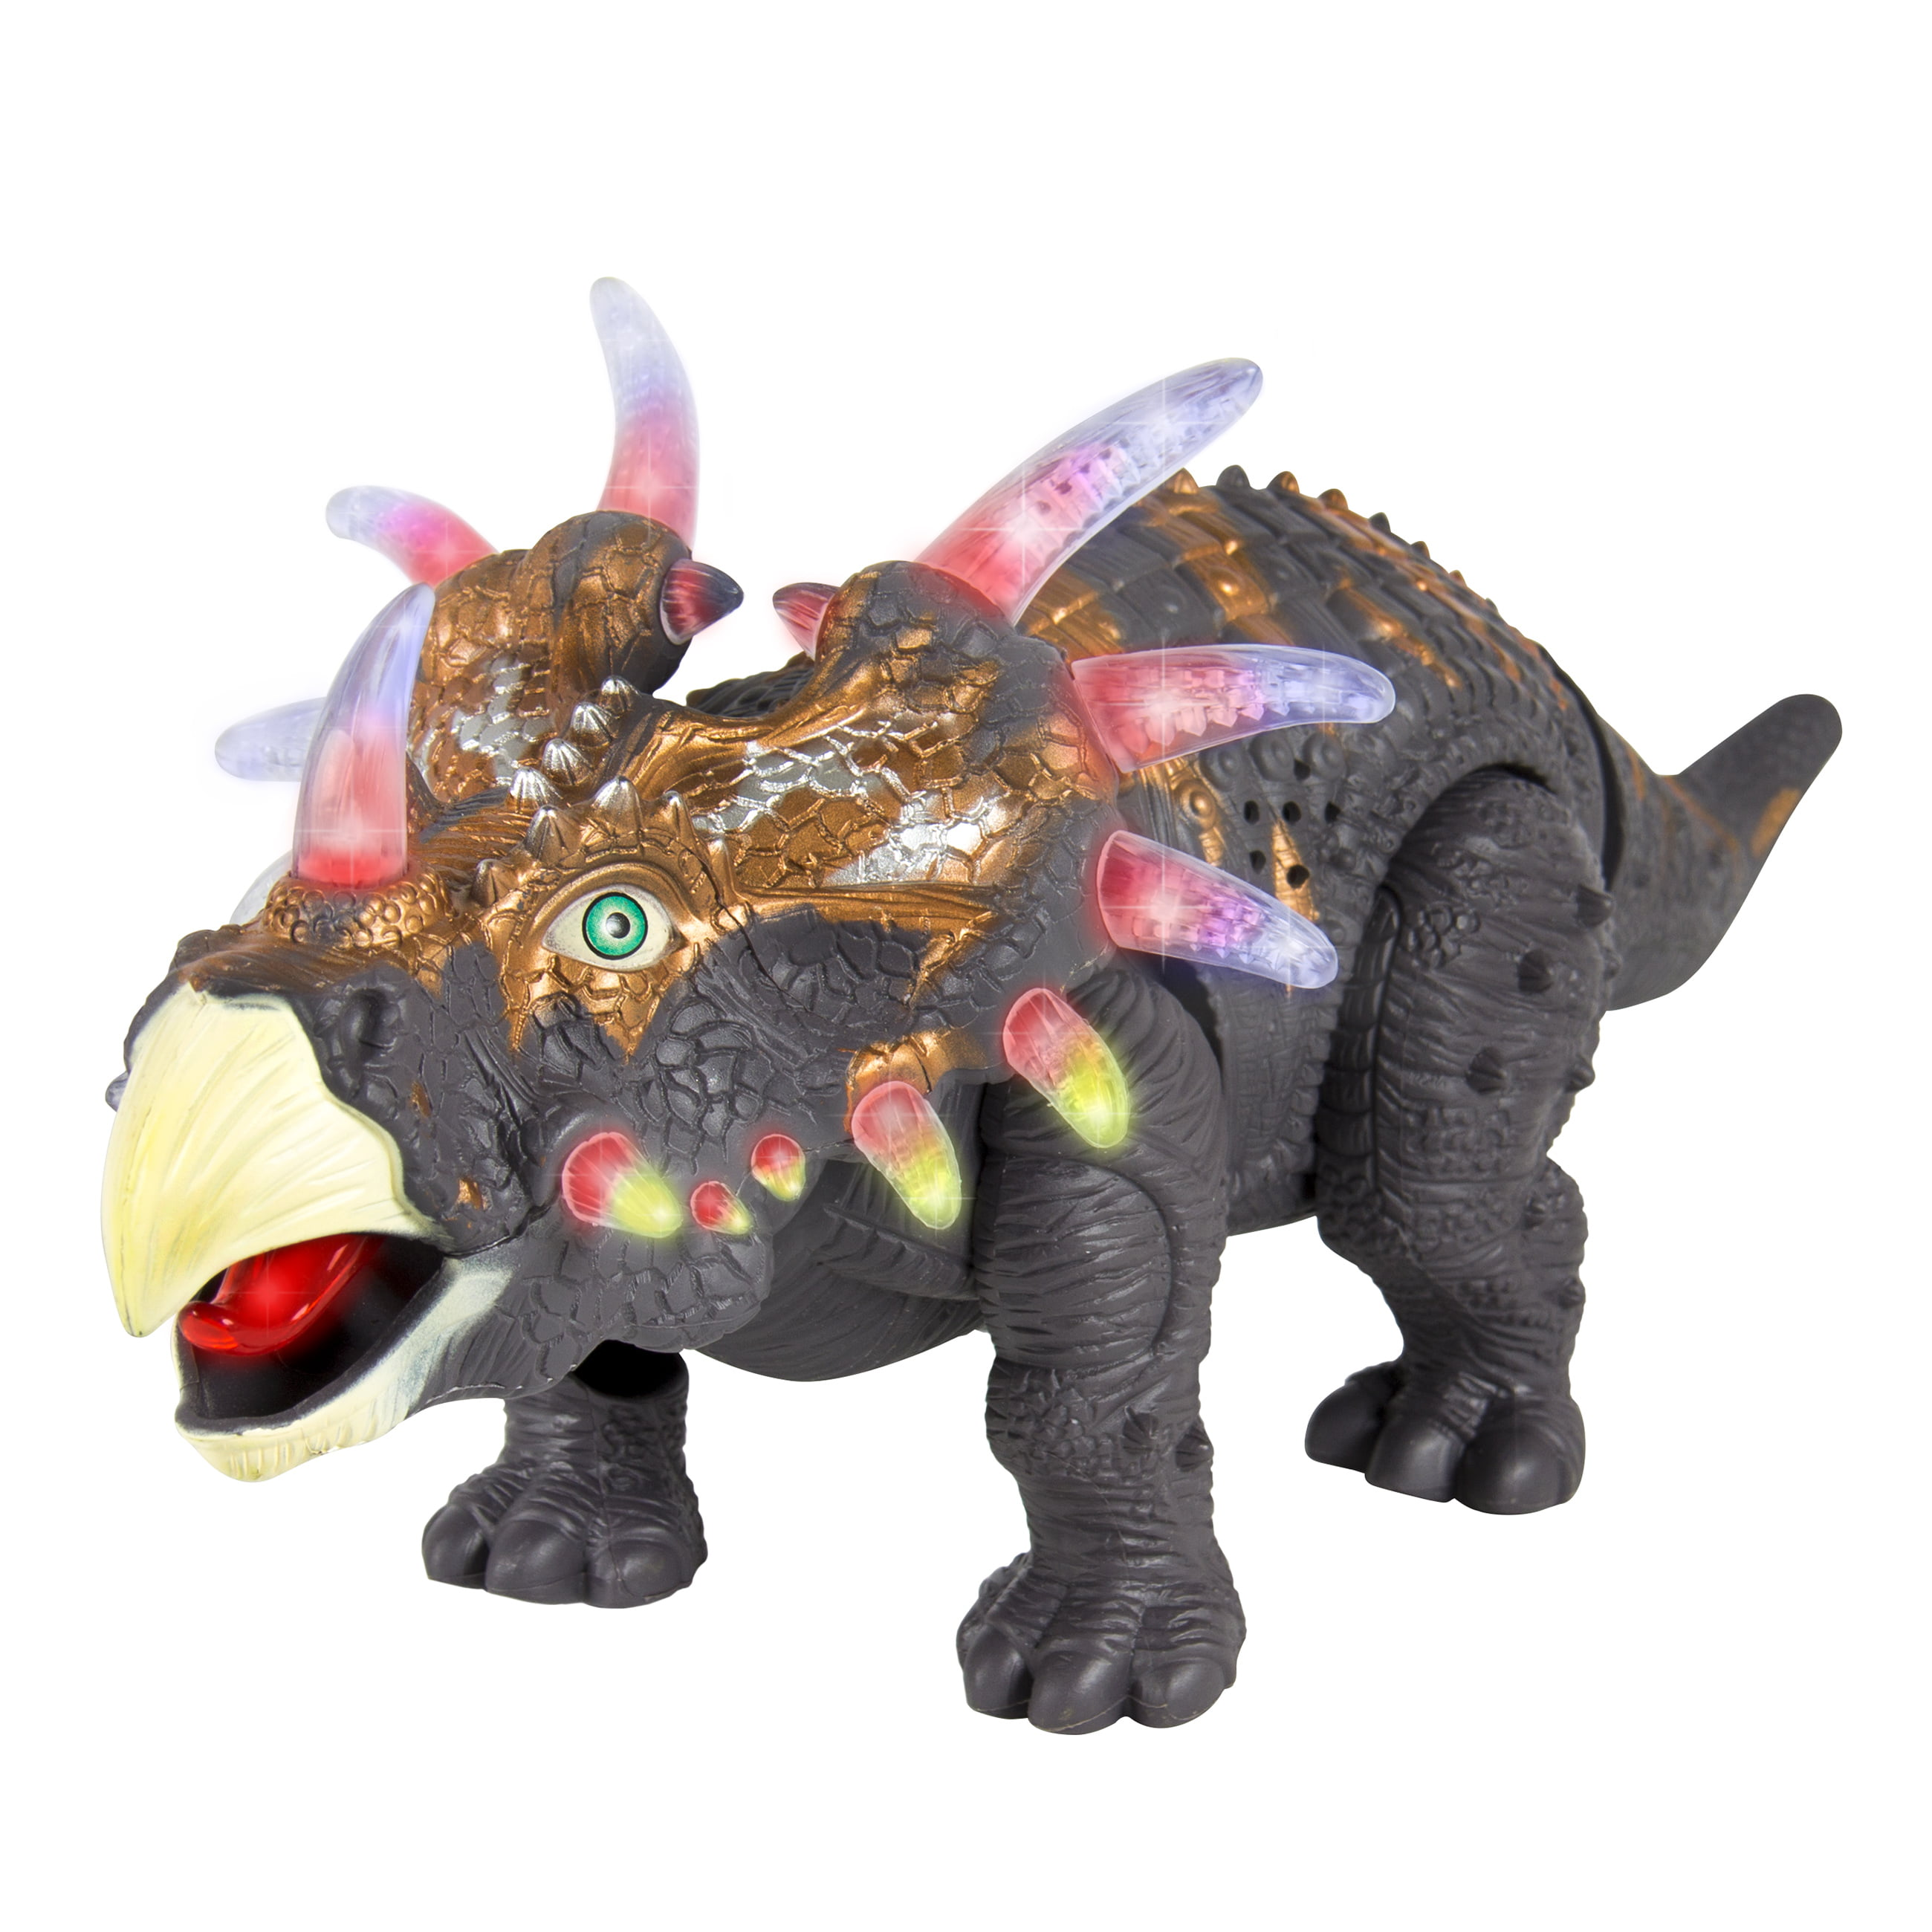 Best Choice Products Walking Dinosaur Triceratops Toy Figure with Many Lights & Sounds, Real Movement by Best Choice Products